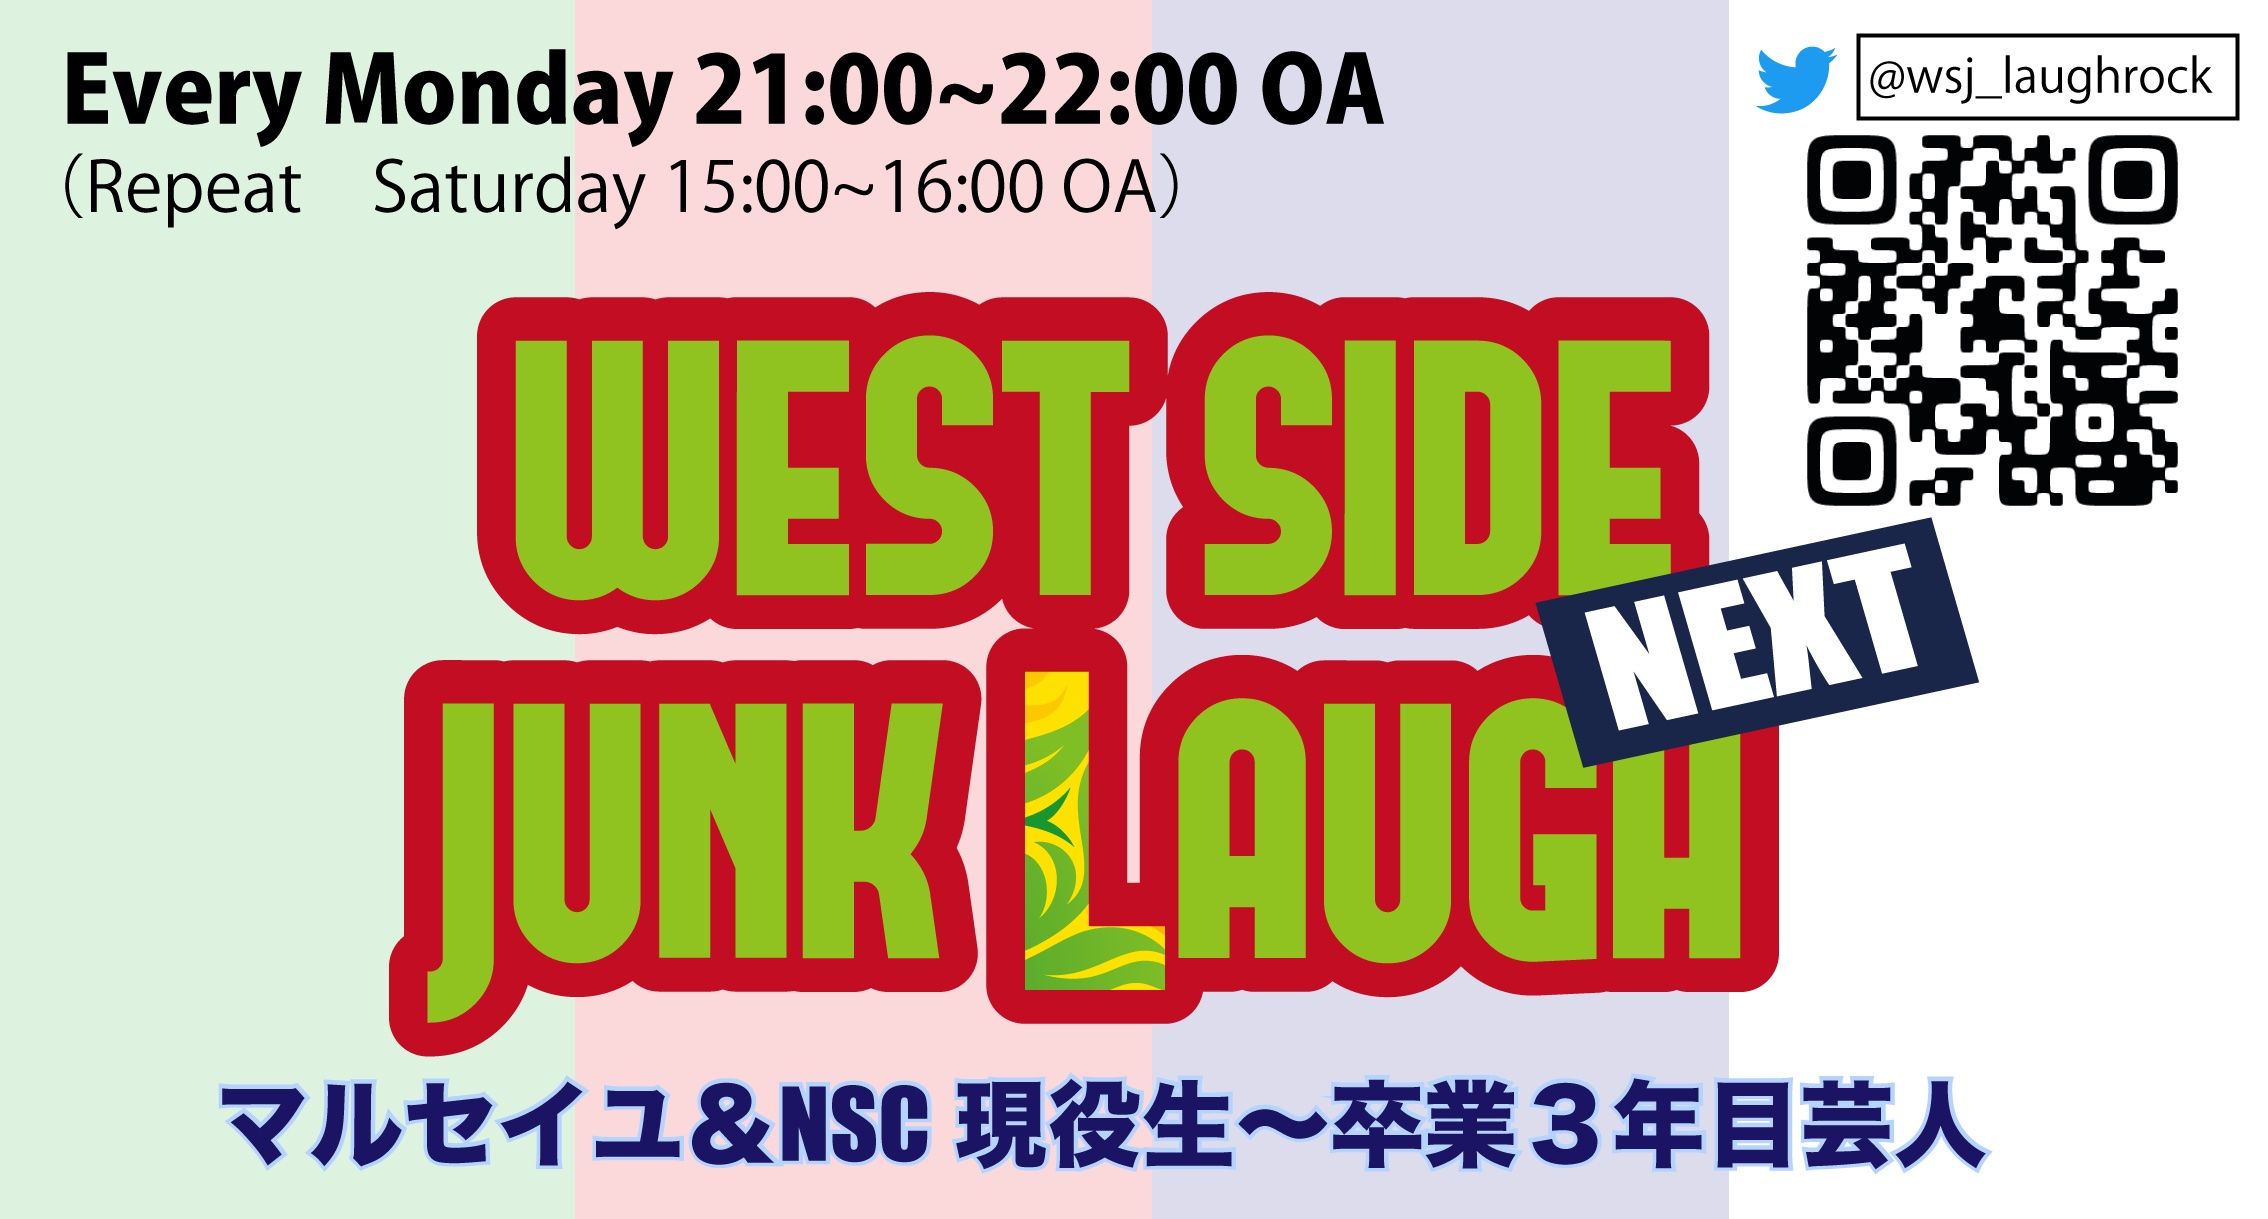 WEST SIDE JUNK LAUGH / WEST SIDE JUNK ROCK Laugh&Rock, Mon-Thu 21:00-22:00